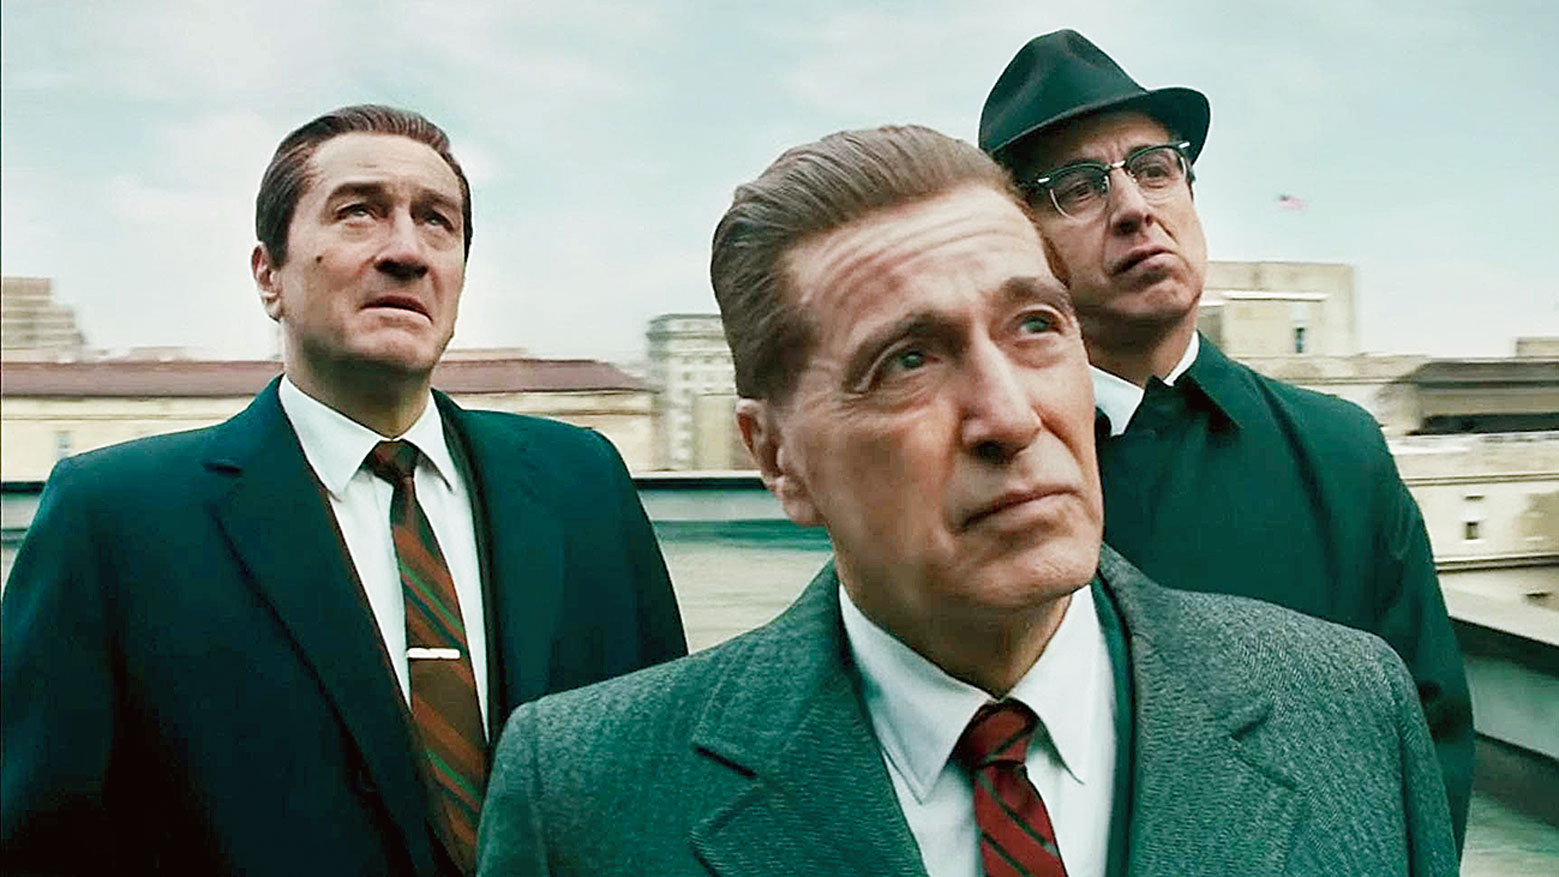 This isn't the last film Scorsese will make, or the last film anyone will make about the Mafia in its heyday, but it does arrive at a kind of resting place. Not an easy one, by any means, since what The Irishman looks back on is a legacy of violence and waste, of men too hard and mean to be mourned